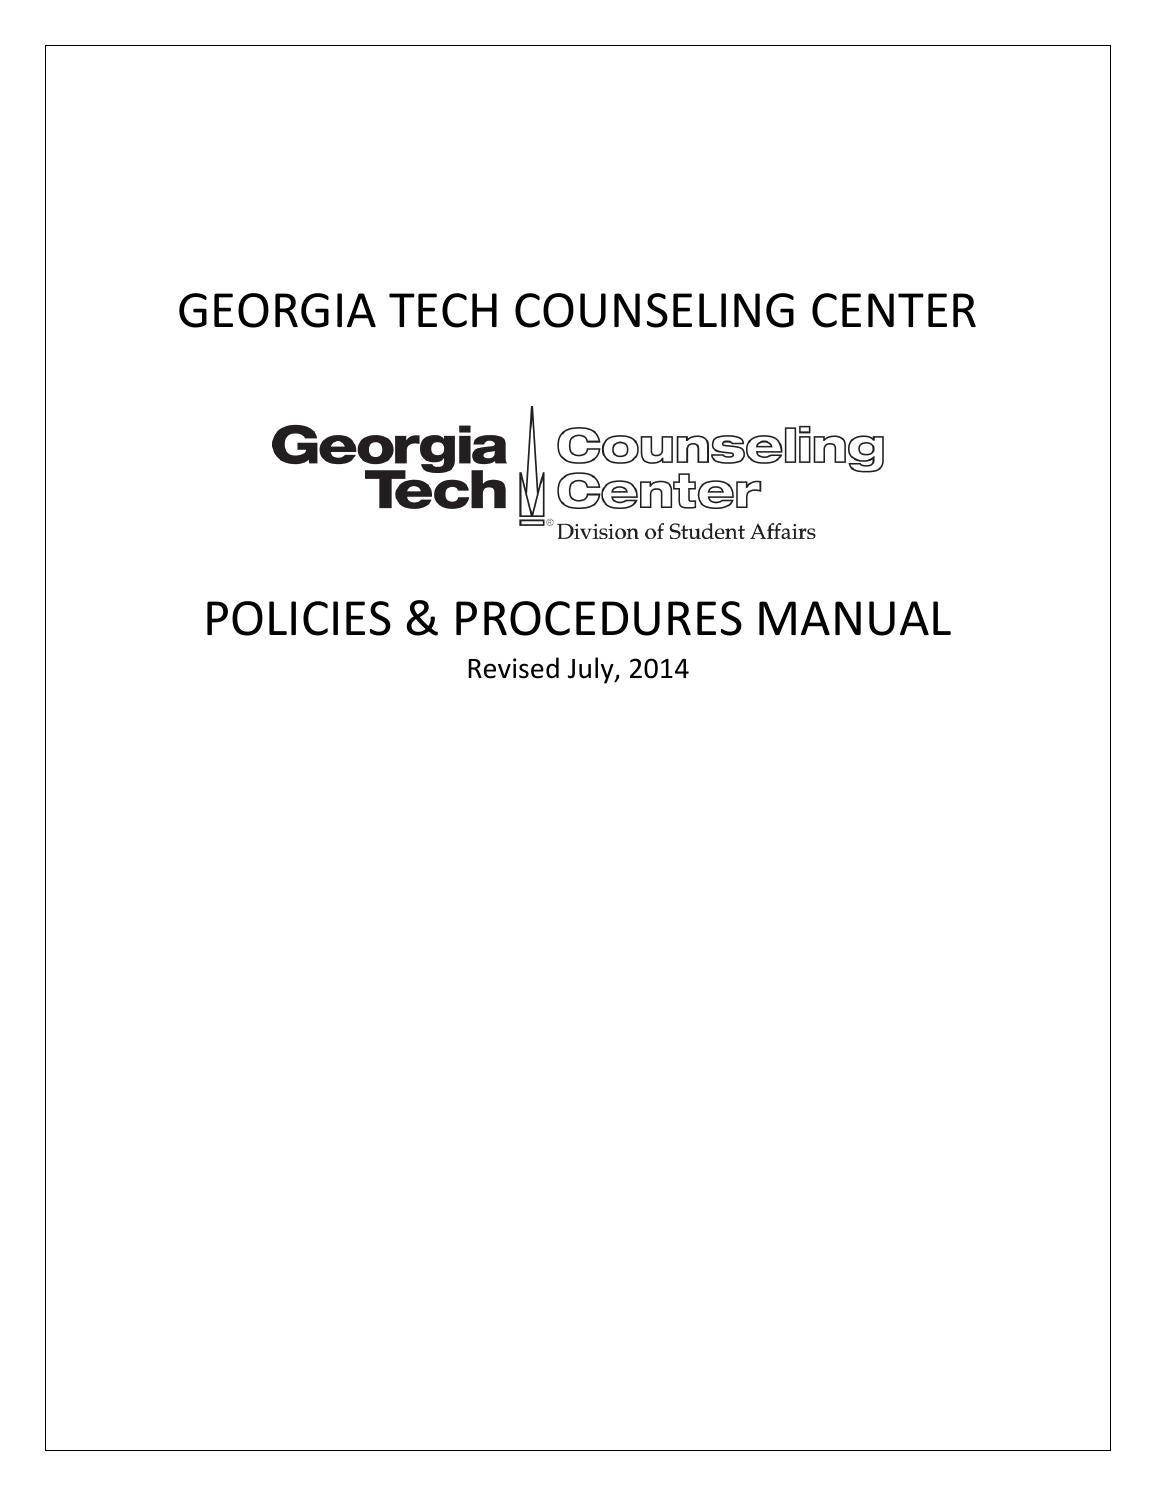 Georgia tech counseling center policies and procedures manual rev georgia tech counseling center policies and procedures manual rev 72014 by ruperto perez issuu xflitez Image collections